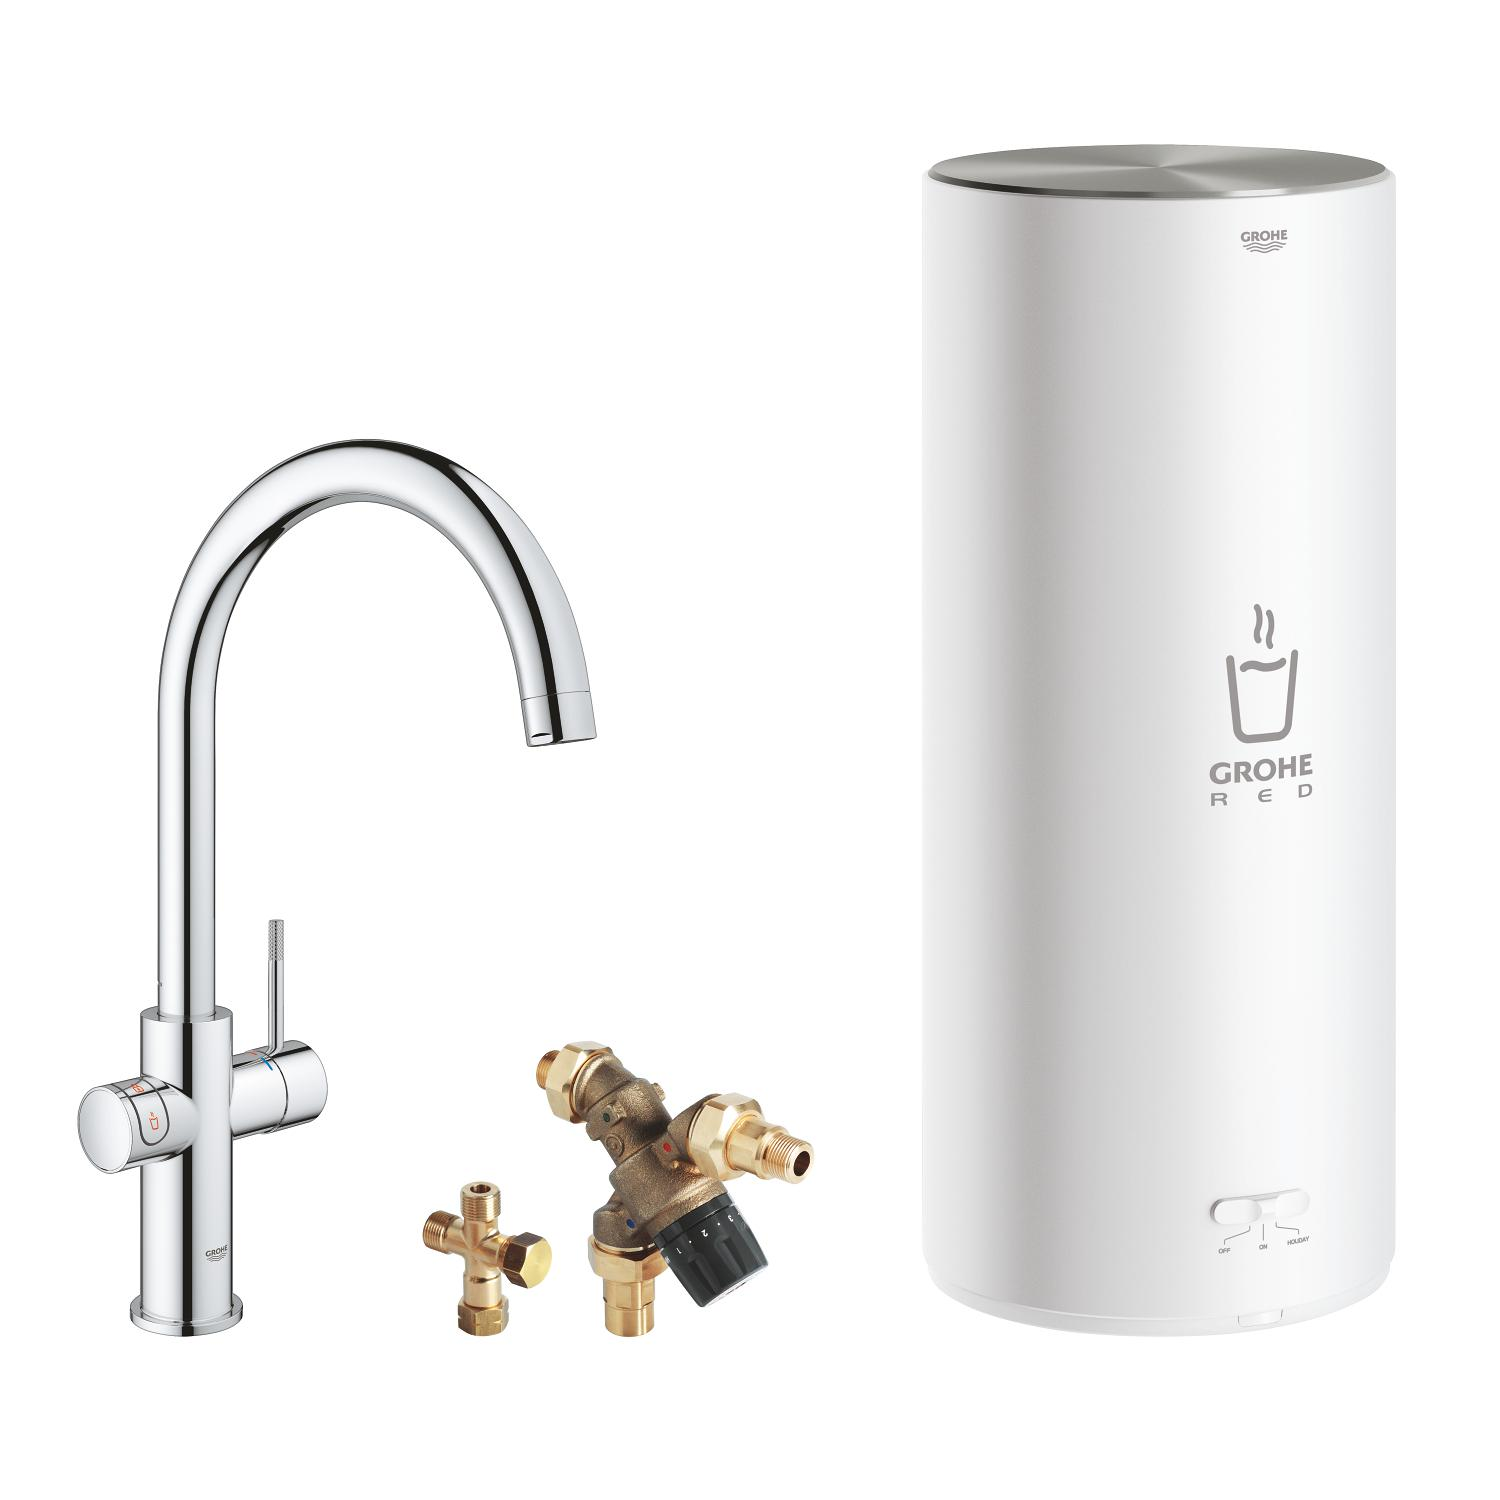 Red Duo keukenmengkraan chroom m.C-uitloop+combiboiler Grohe